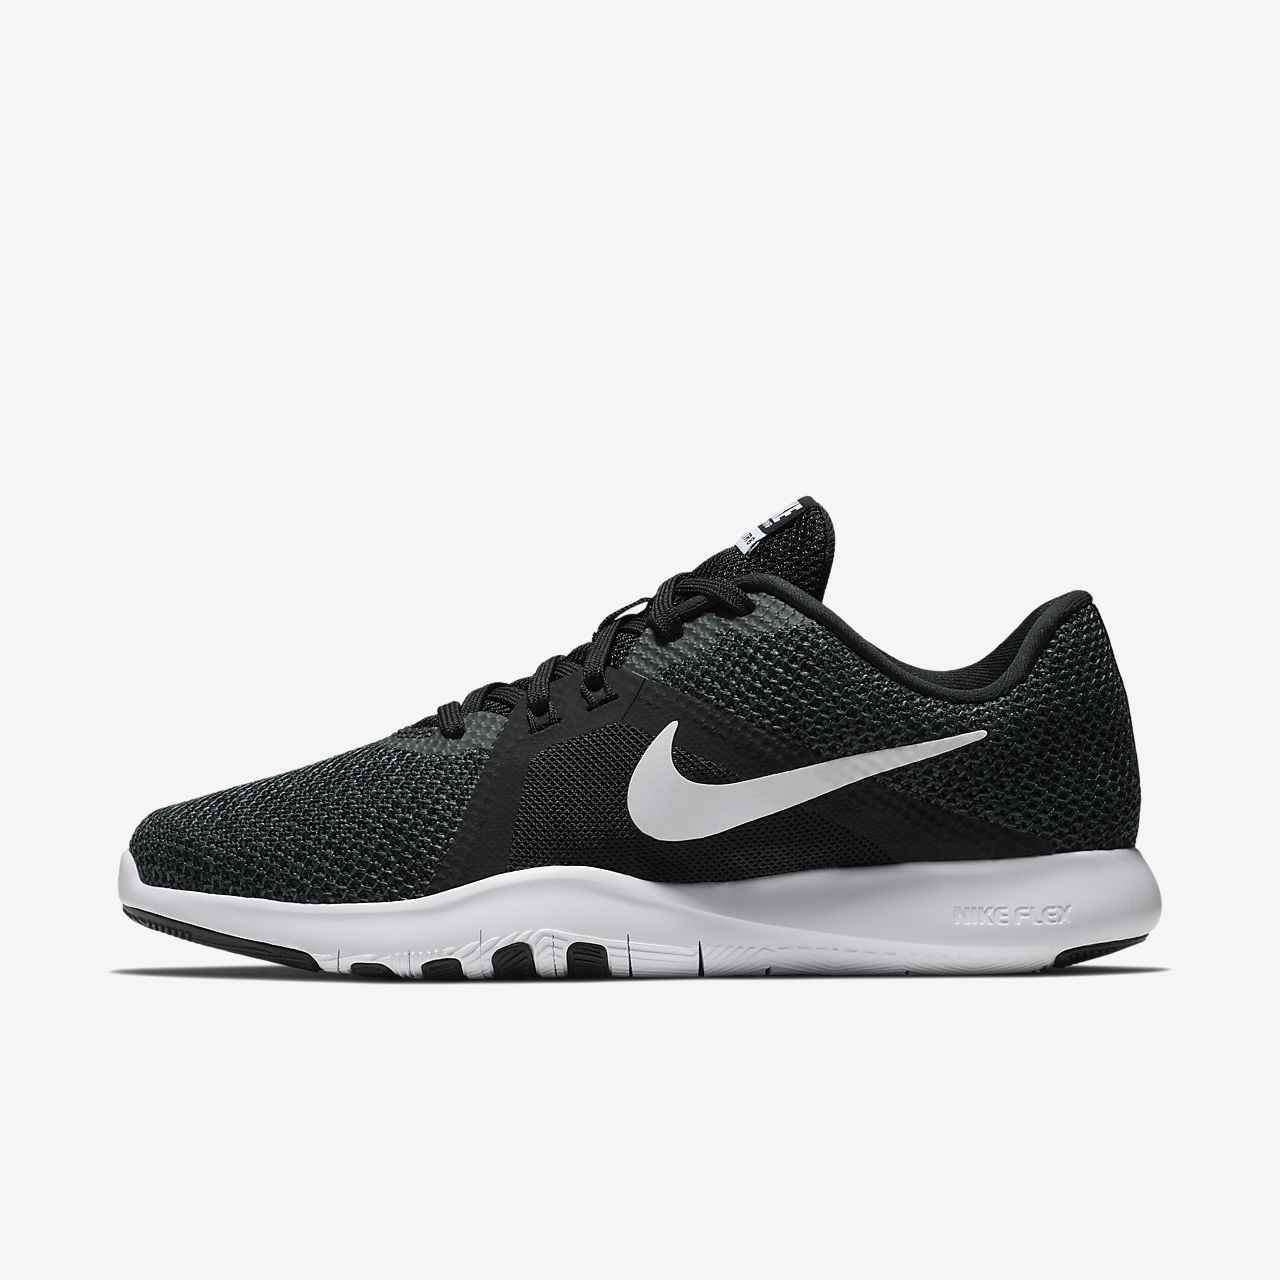 nike football chaussure, Nike performance flex contact